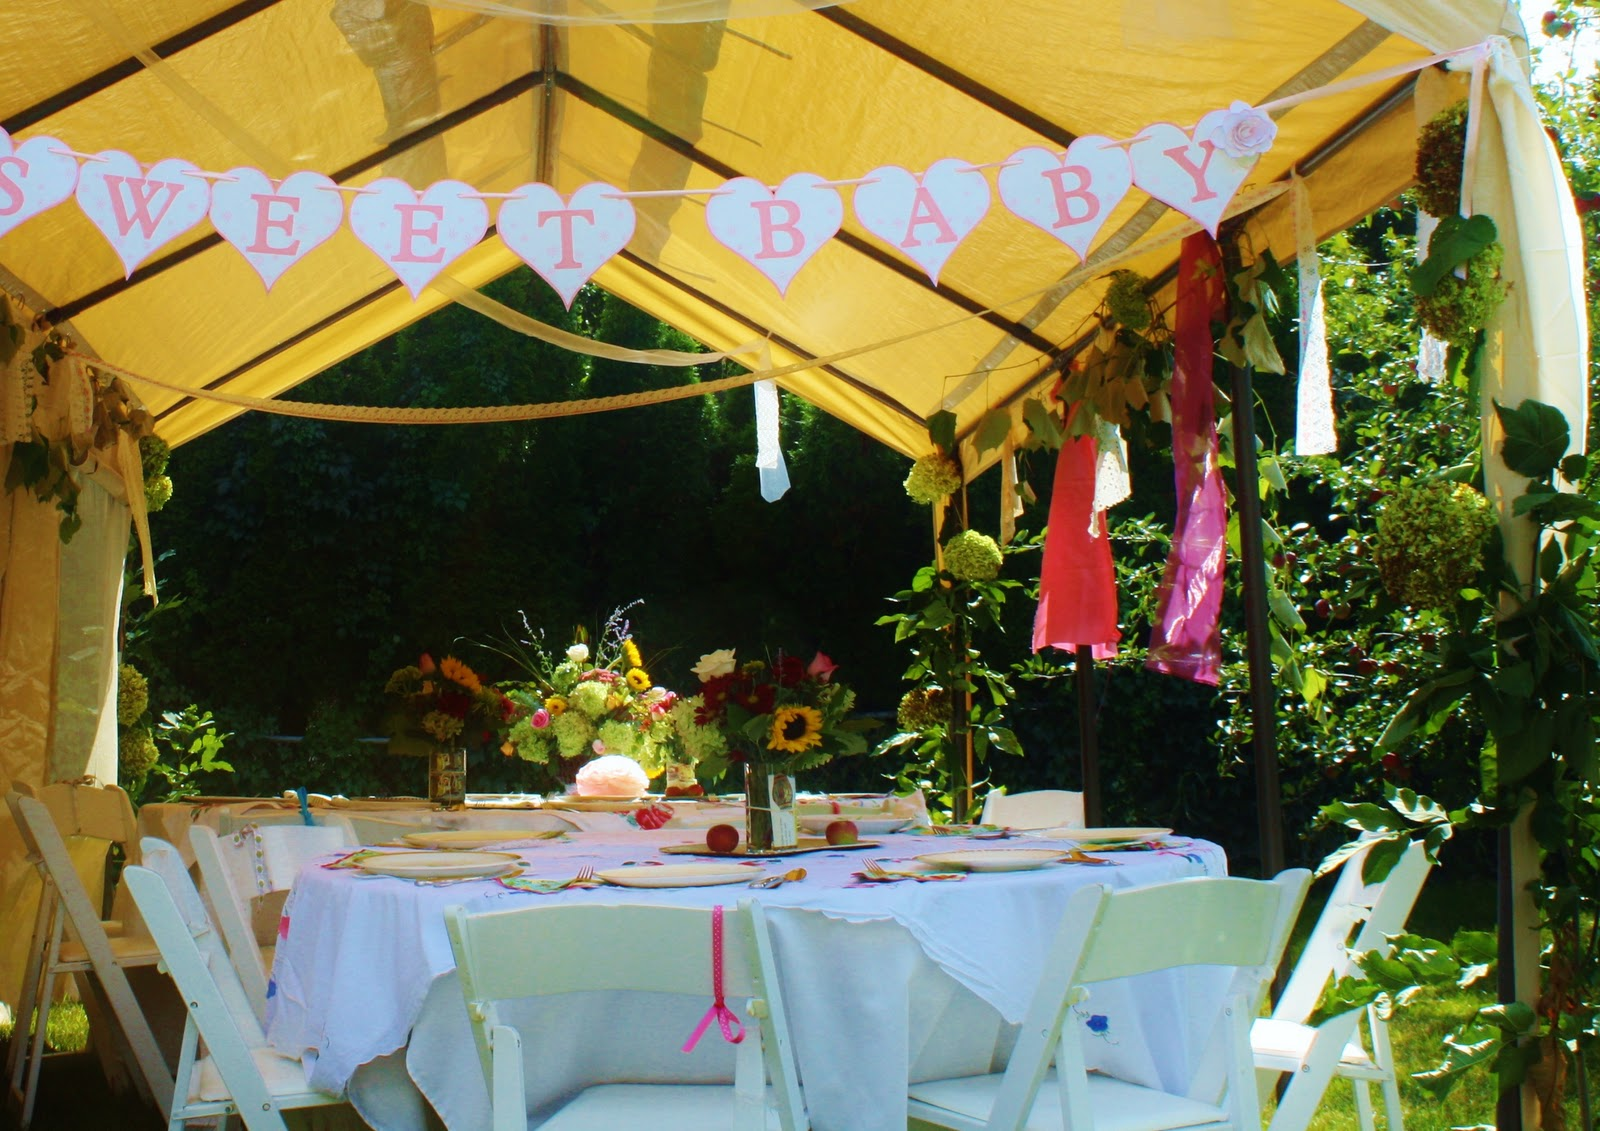 We had the party in my backyard in a tent a friend loaned me. It was about the size of a carport and fit 3 5u0027 round tables perfectly. & Art as Usual: A Vintage Book Baby Shower